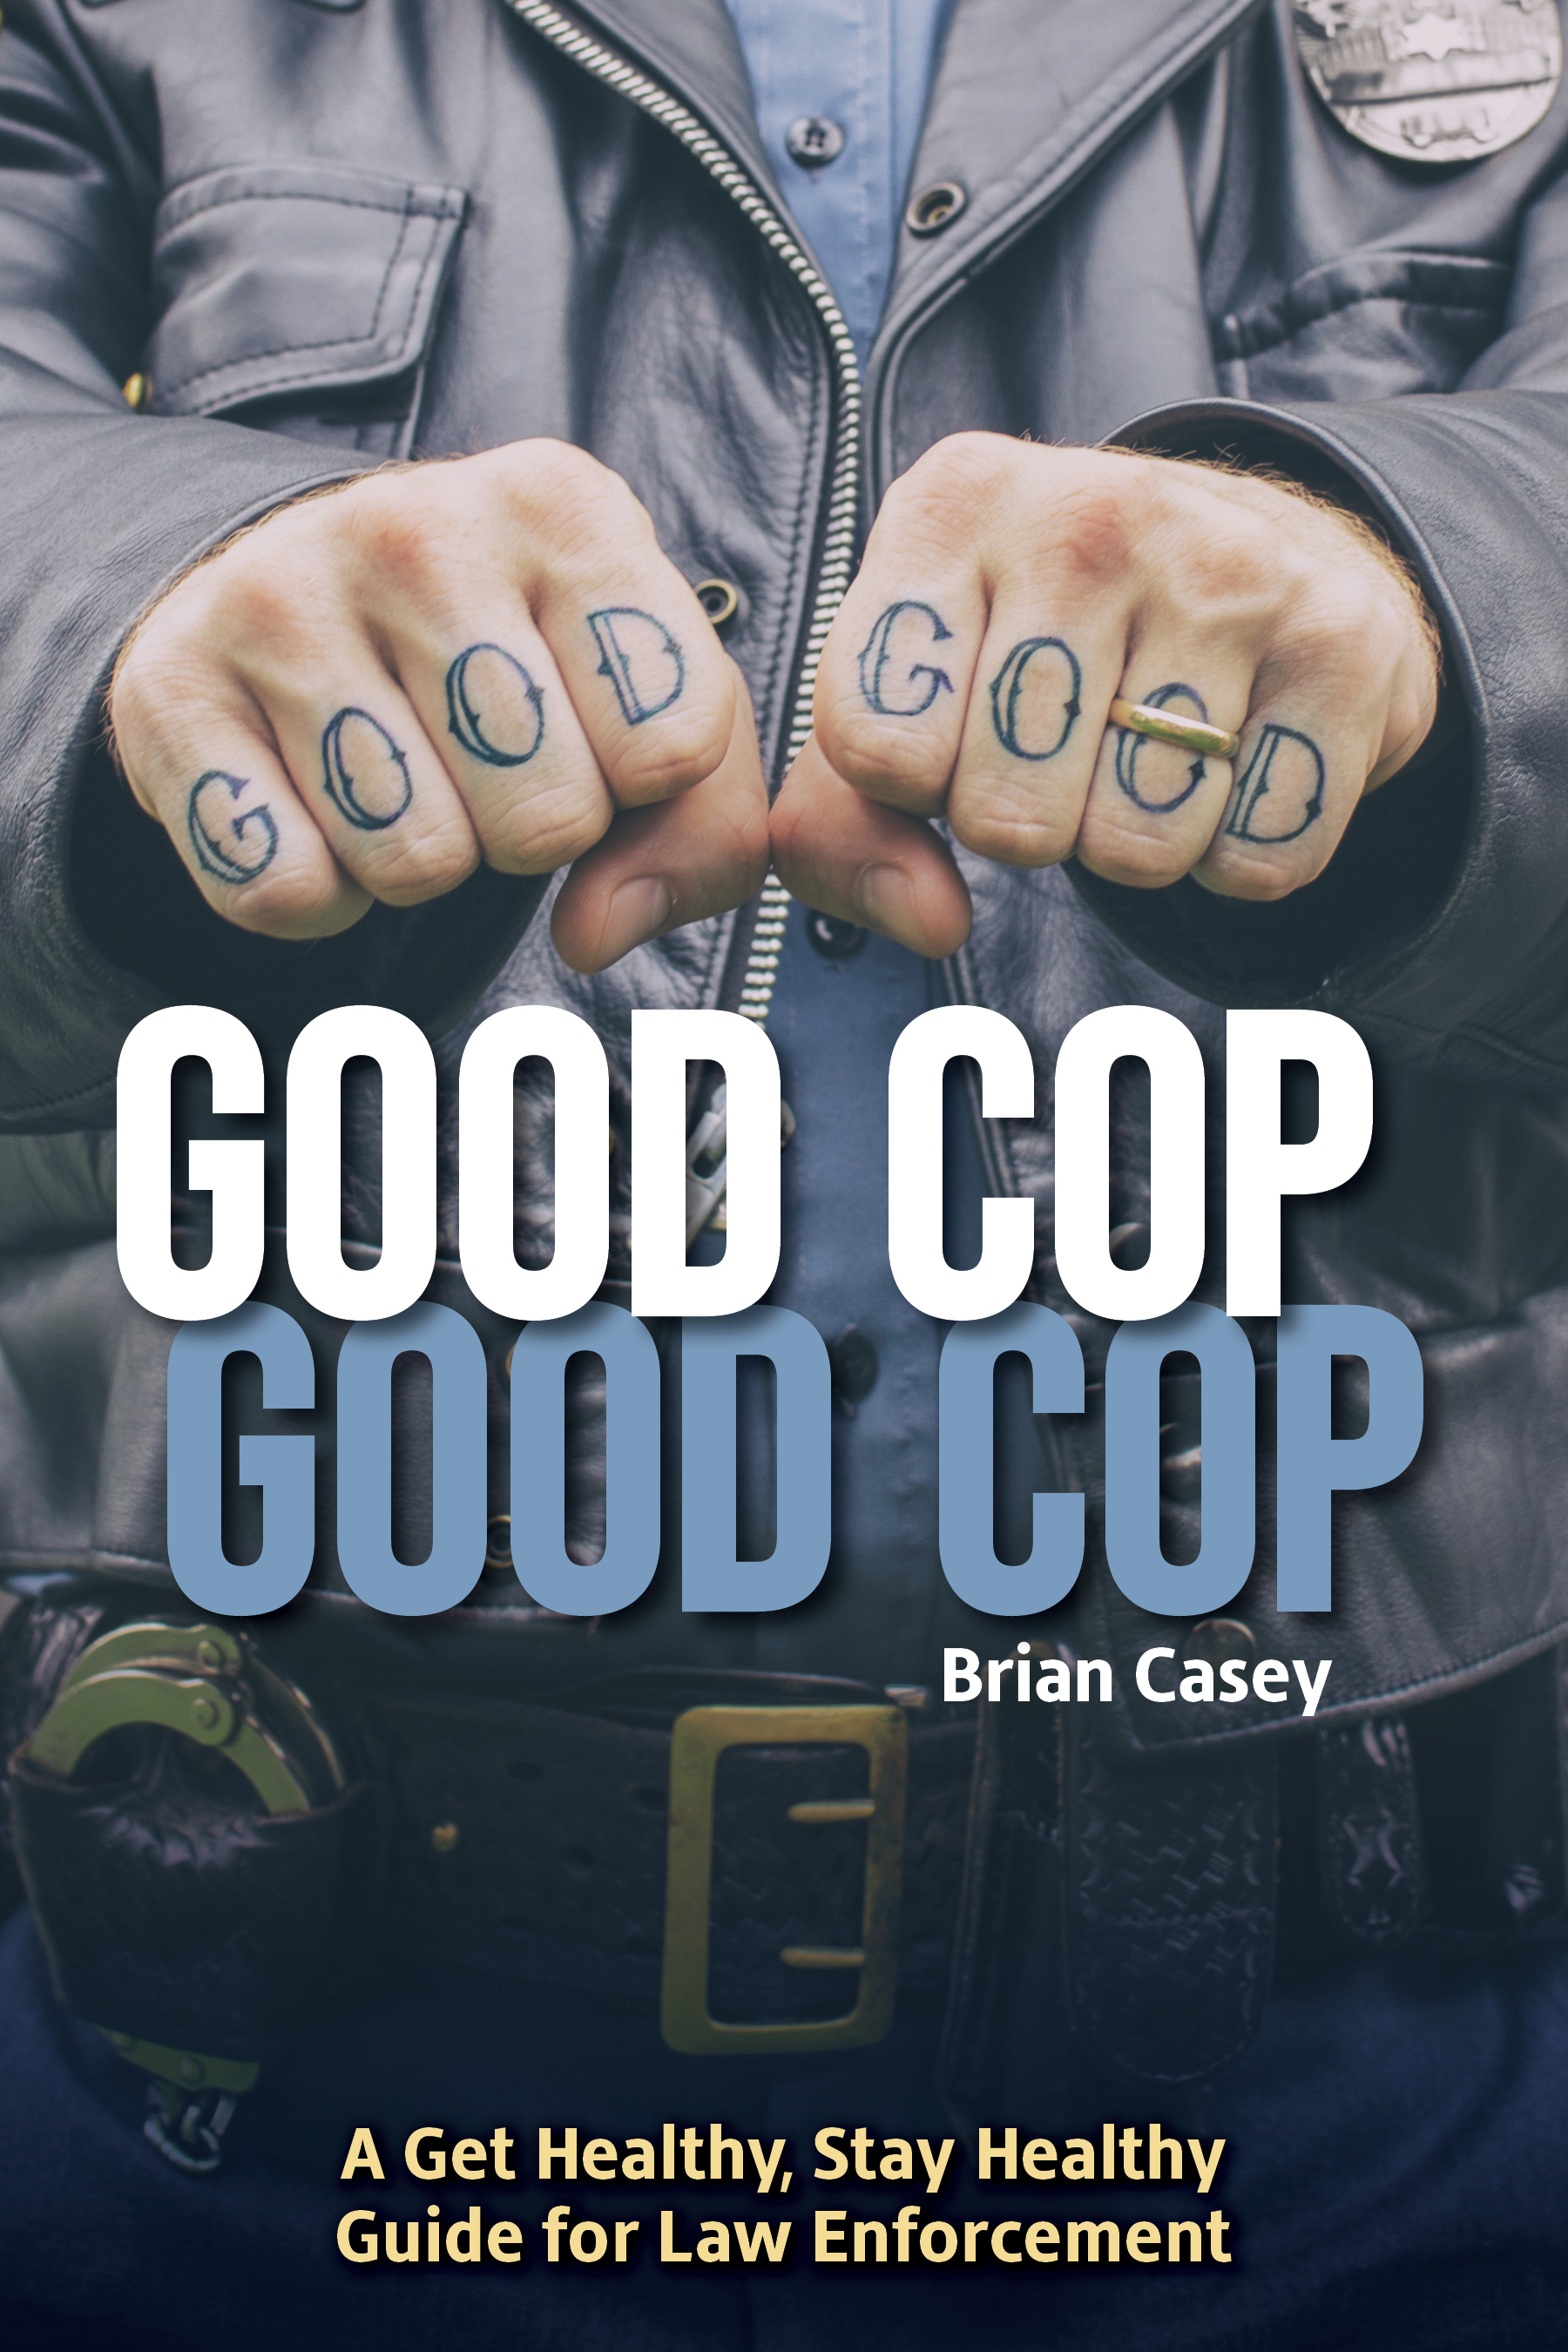 Good Cop, Good Cop: Get Healthy, Stay Healthy Guide for Law Enforcement  by Brian Casey. Alley Light Press. ISBN 978-1-7325651-0-4